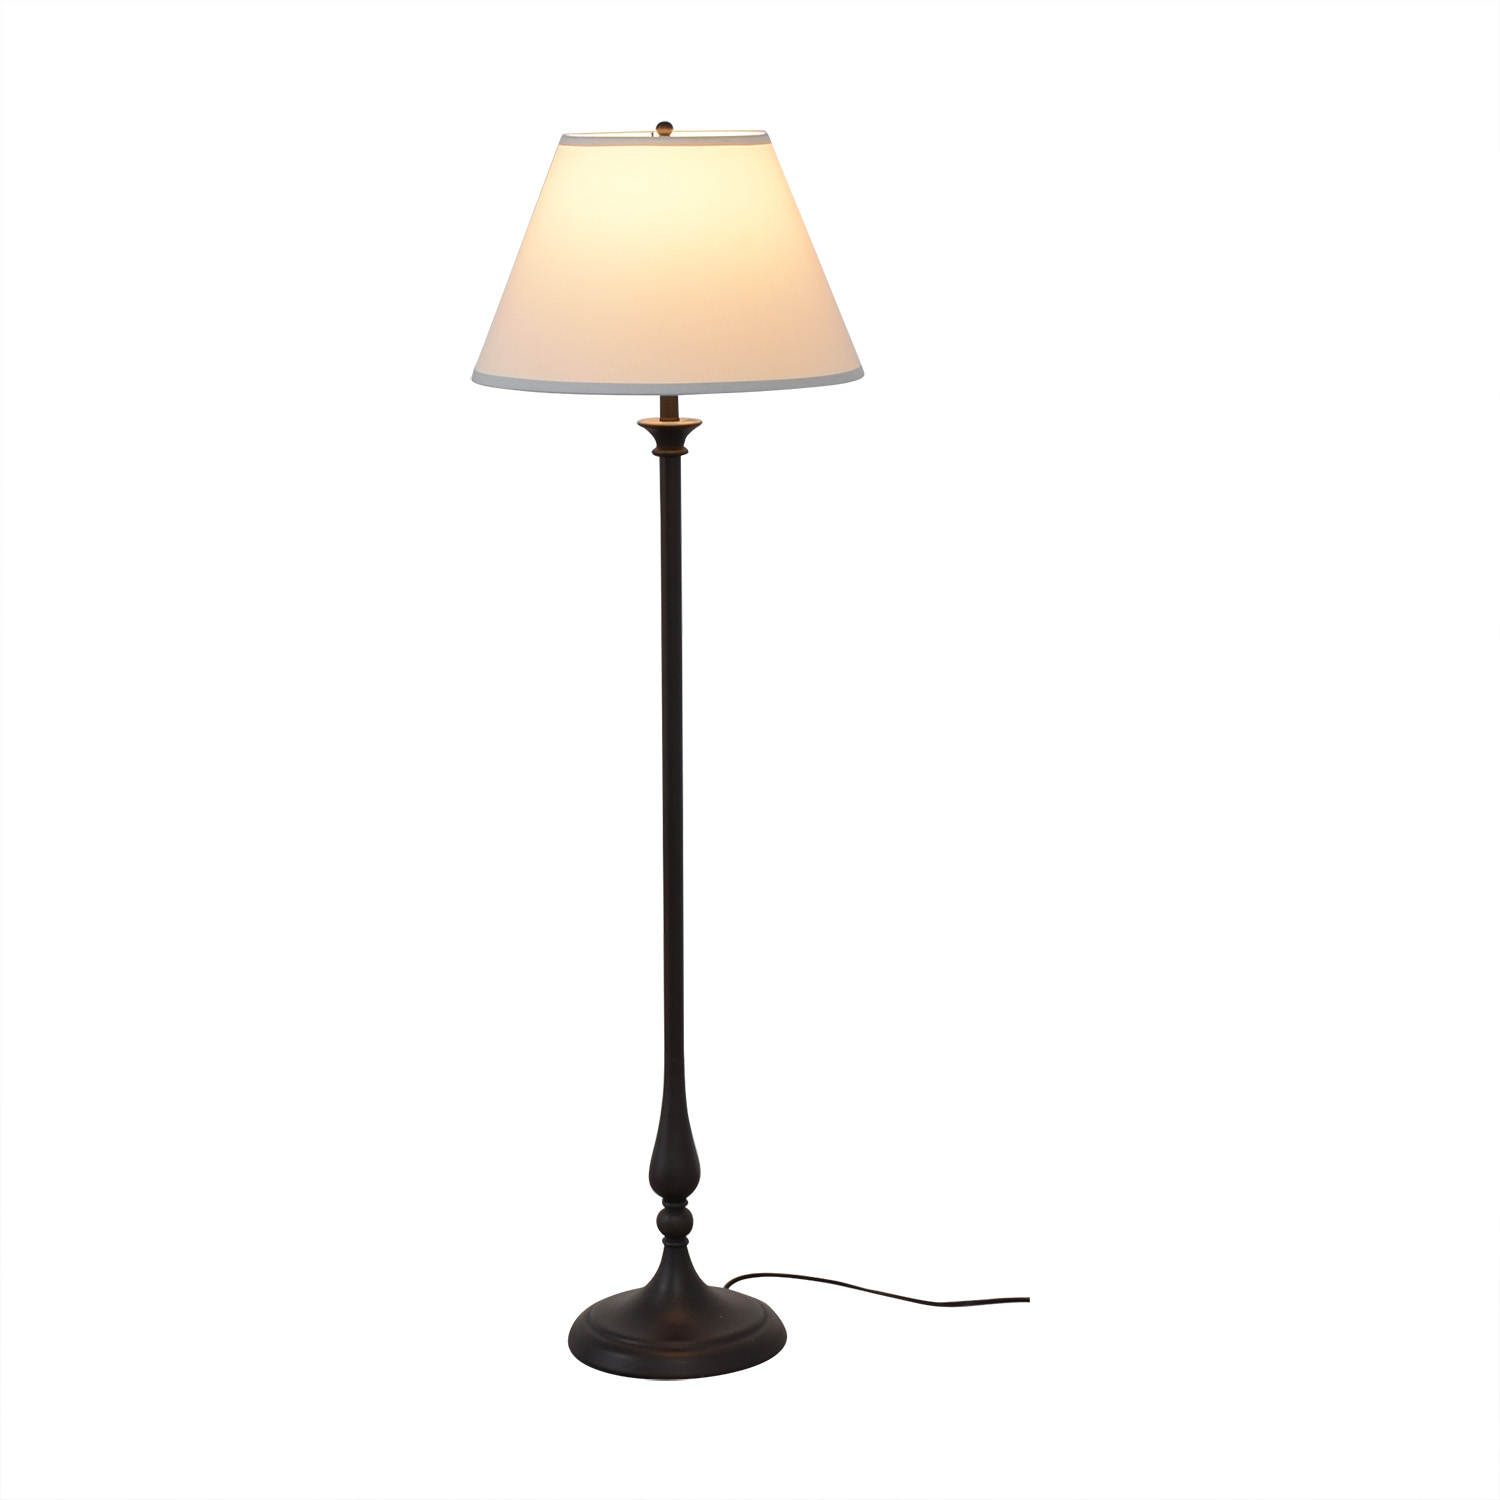 shop Pottery Barn Pottery Barn Floor Lamp online